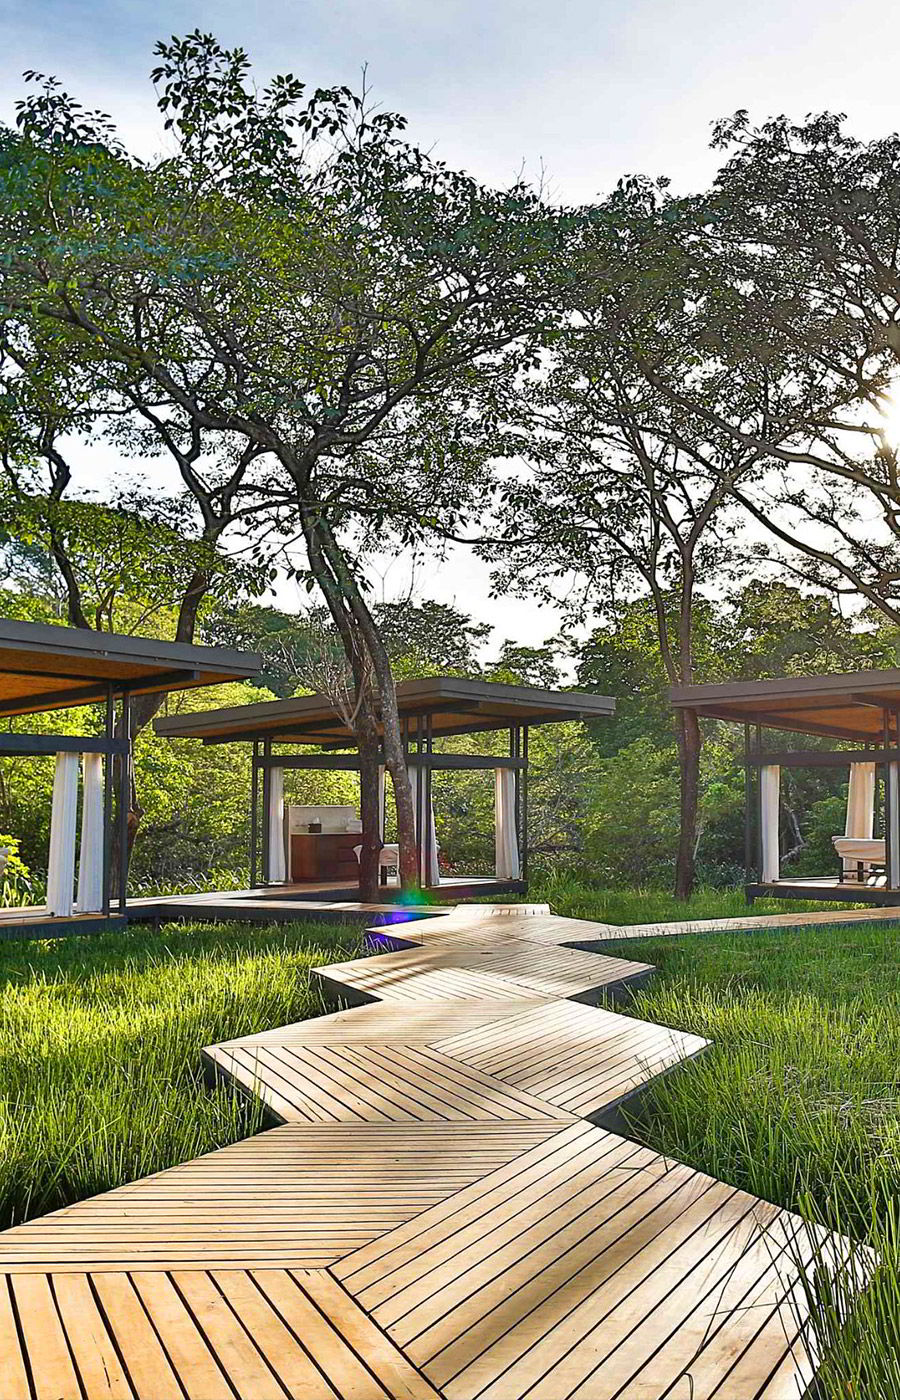 el mangroove guanacaste costa rica honeymoon destination wedding venue spa in mangrove forest